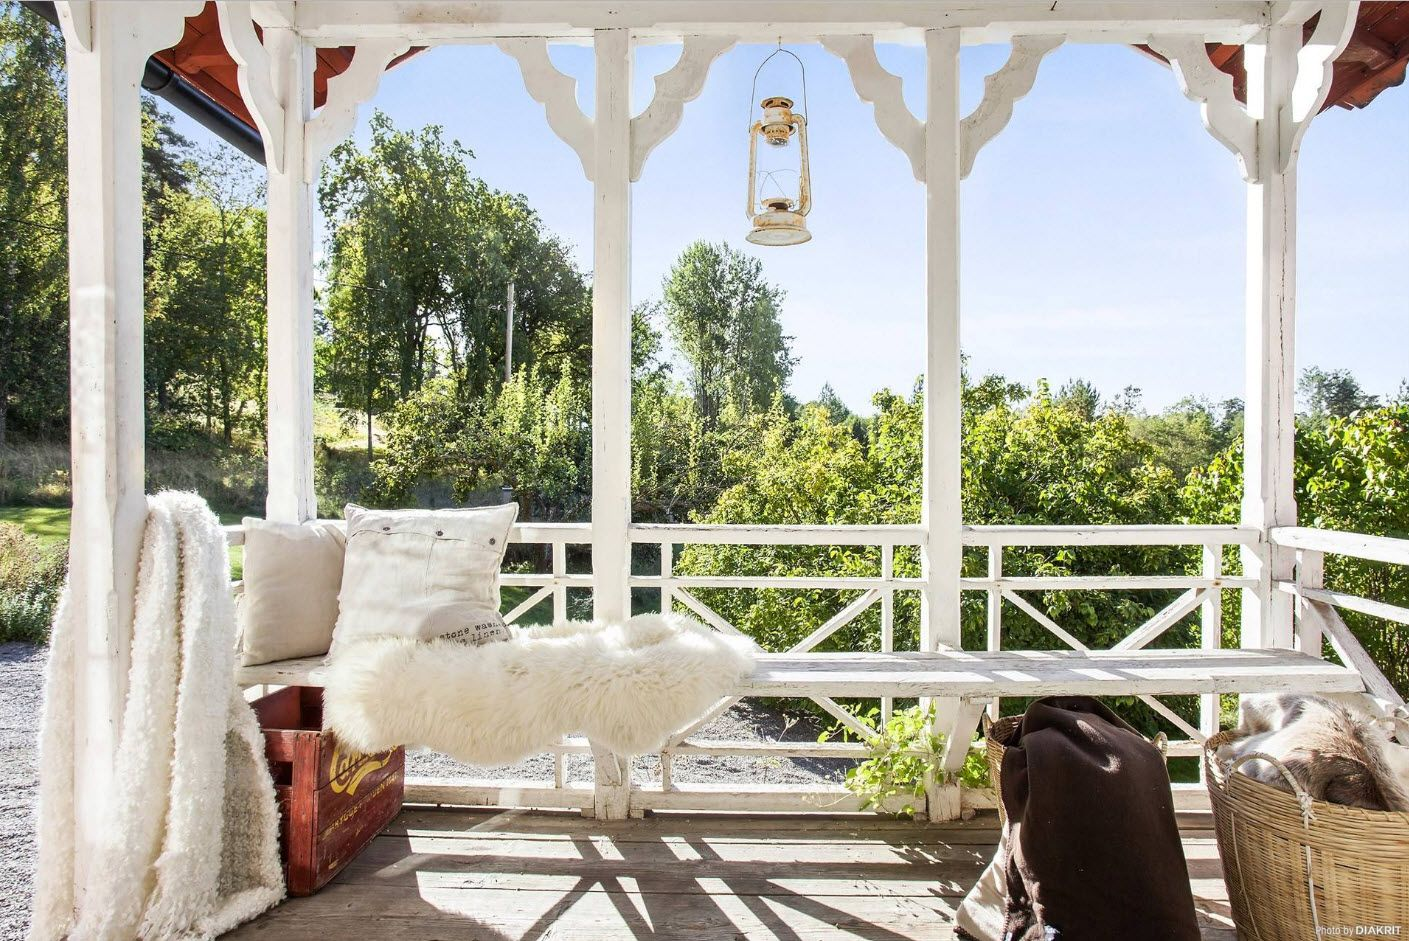 White wooden lightweight construction at the porch